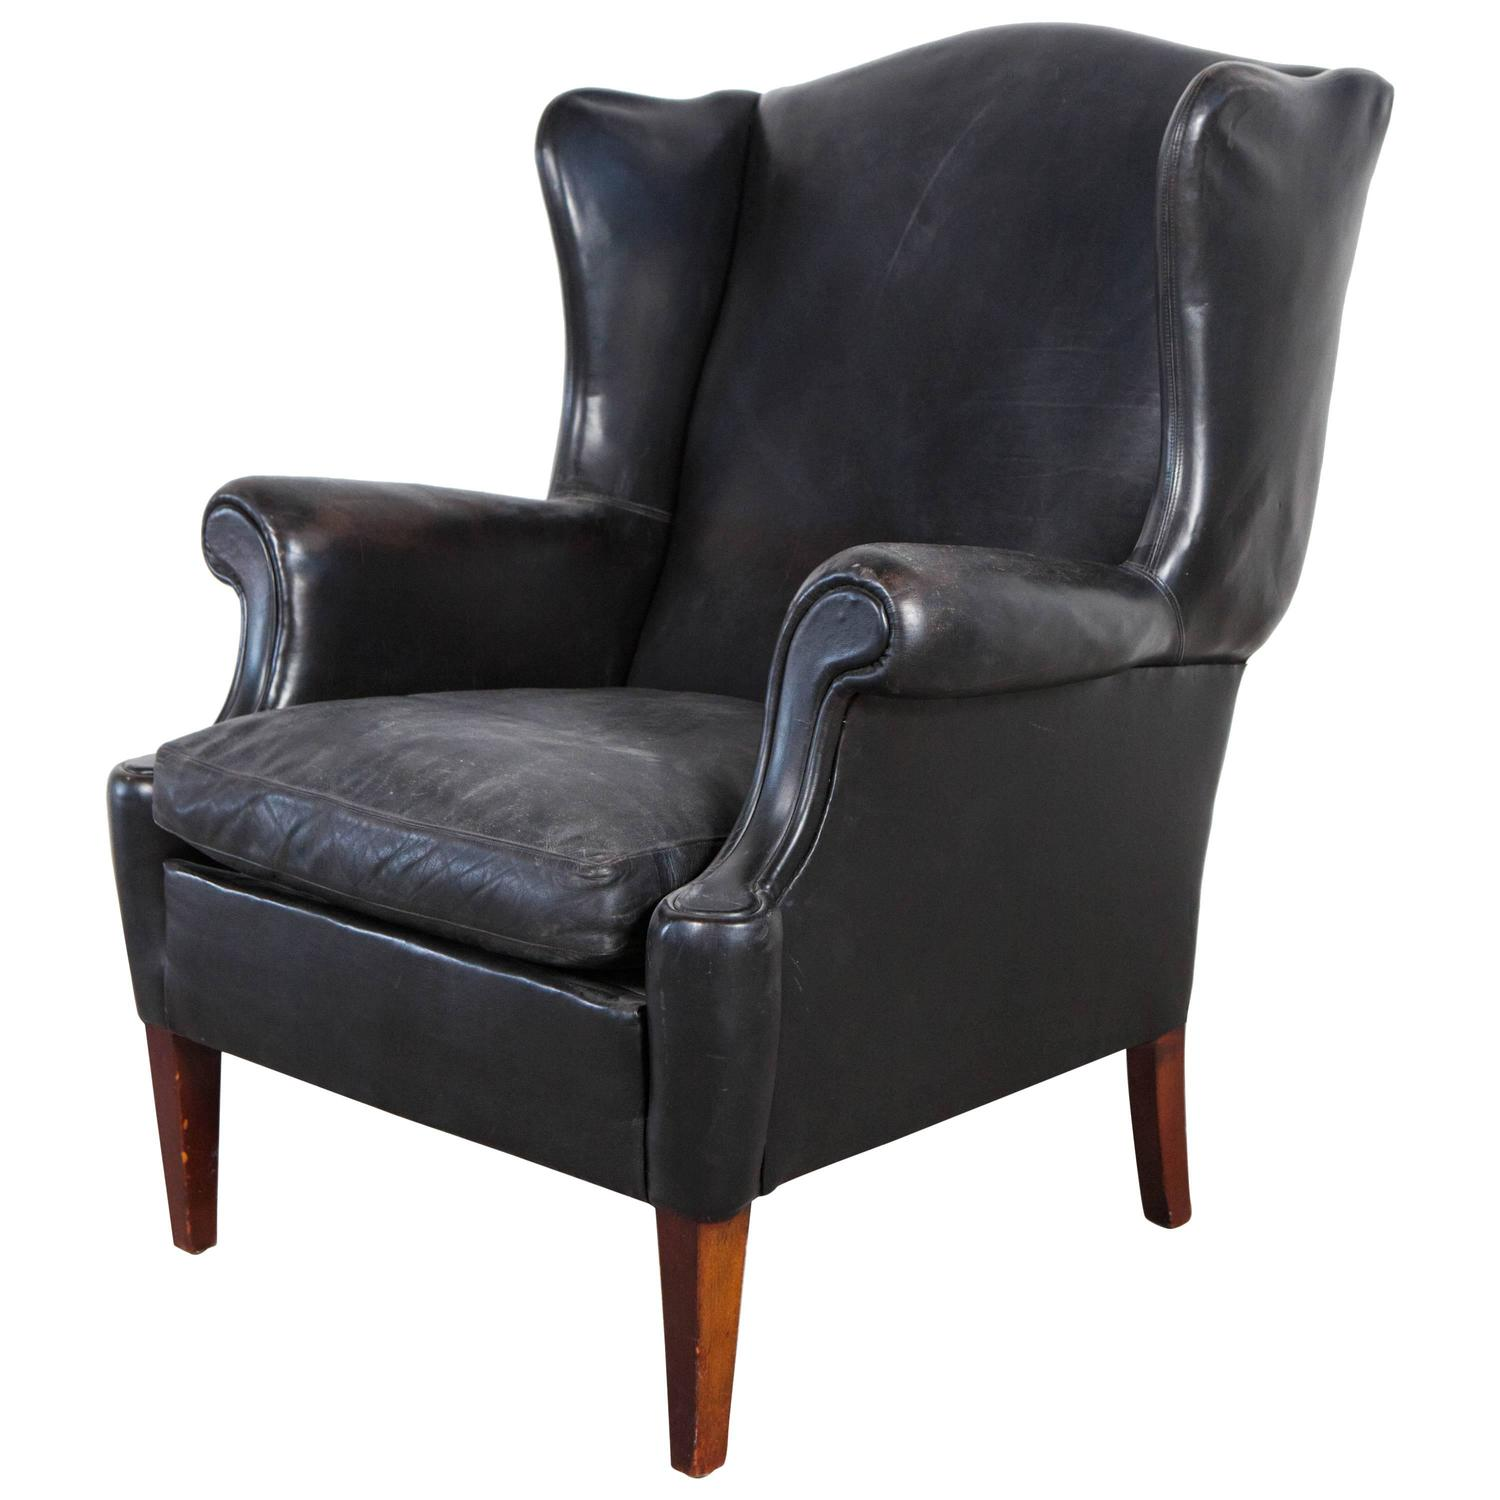 Black Leather Curved Arm Wing Back Club Chair at 1stdibs